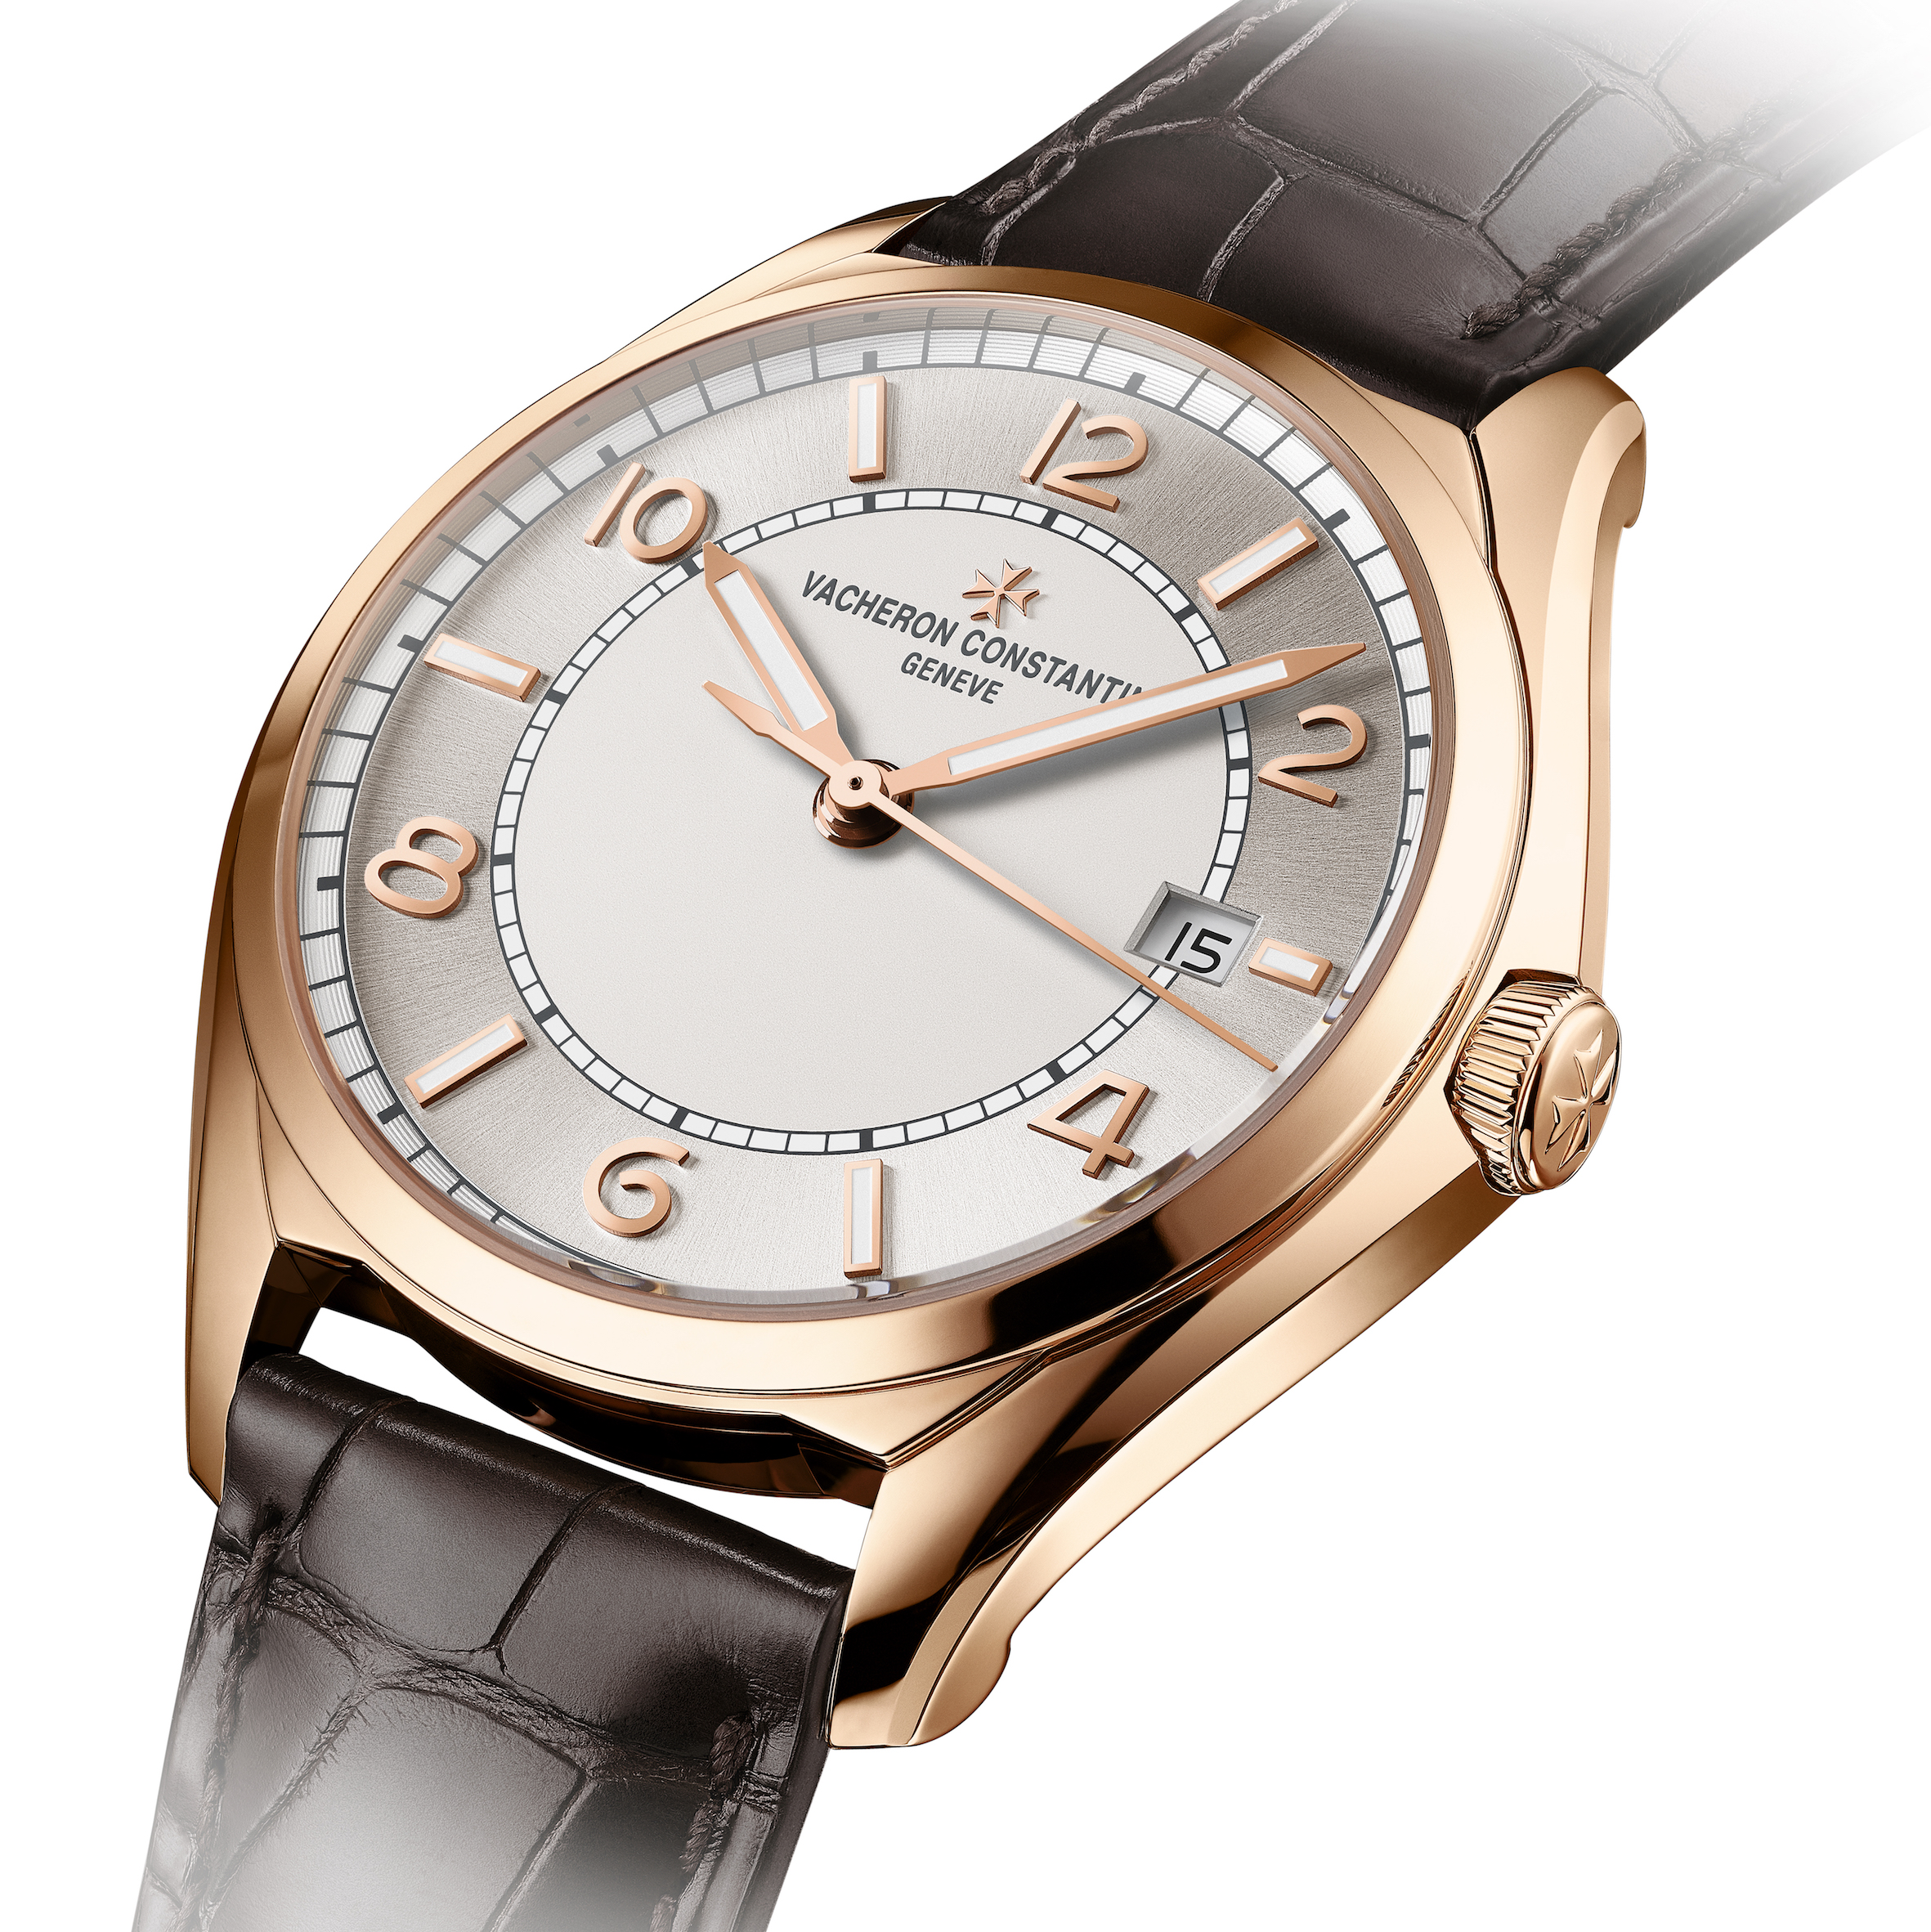 Vacheron Constantin FIFTYSIX self-winding. Alternating gold Arabic numerals and hour-markers enliven the monochrome dial with its double opaline-sunburst effect: grey on the steel version and silver-toned on the pink gold version. The baton-type gold hours and minutes hands, as well as the hour-markers, are coated with a luminescent material.